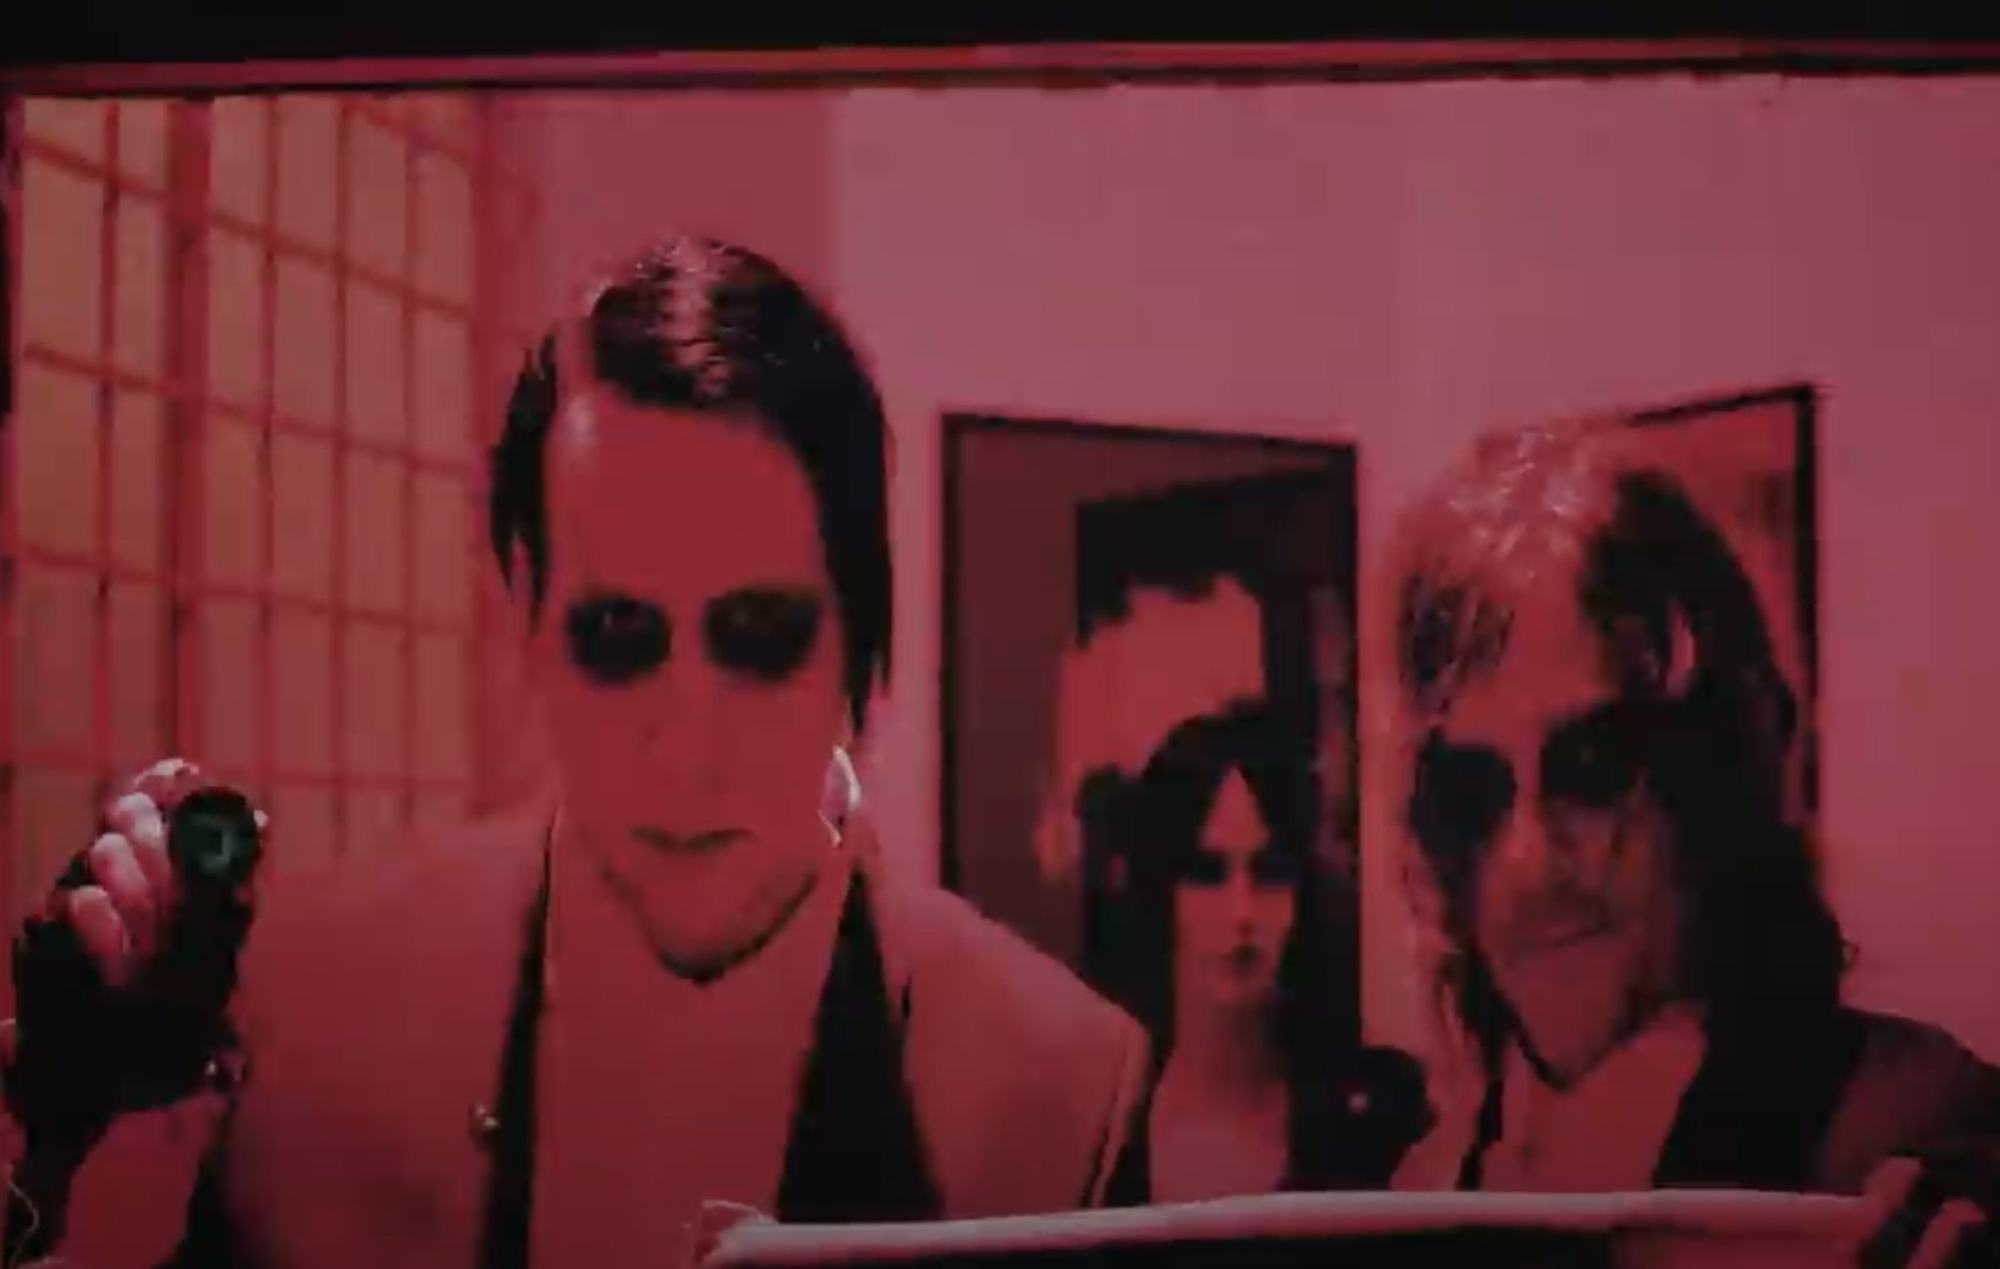 marilyn-manson-shares-dont-chase-the-dead-video-starring-norman-reedus